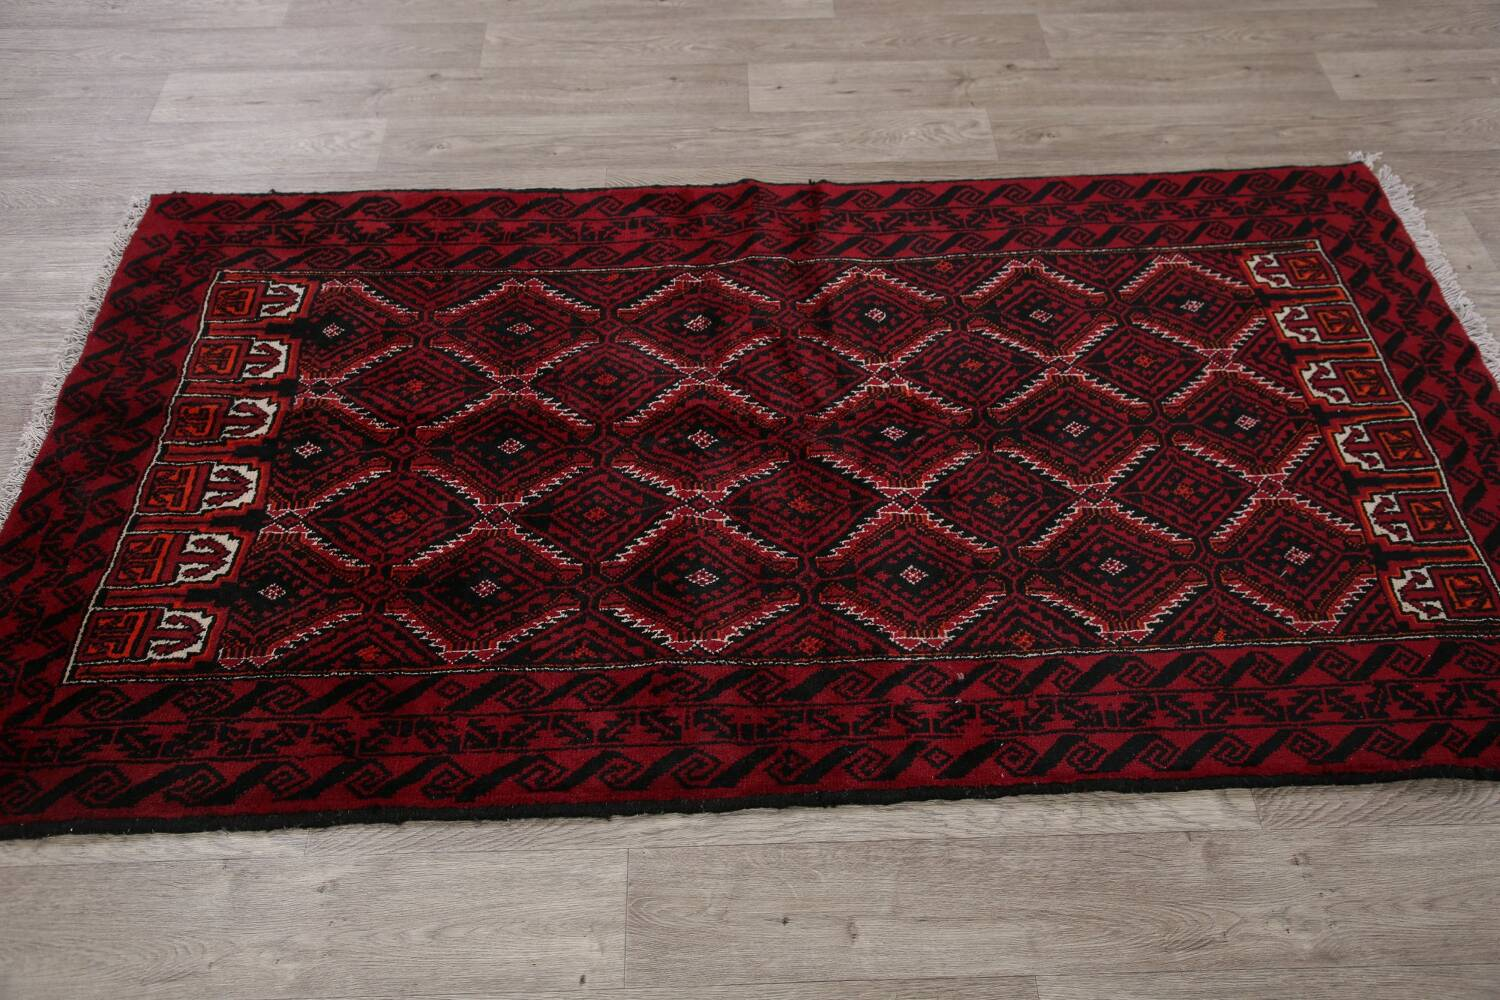 Geometric Red Balouch Oriental Runner Rug 3x7 image 14